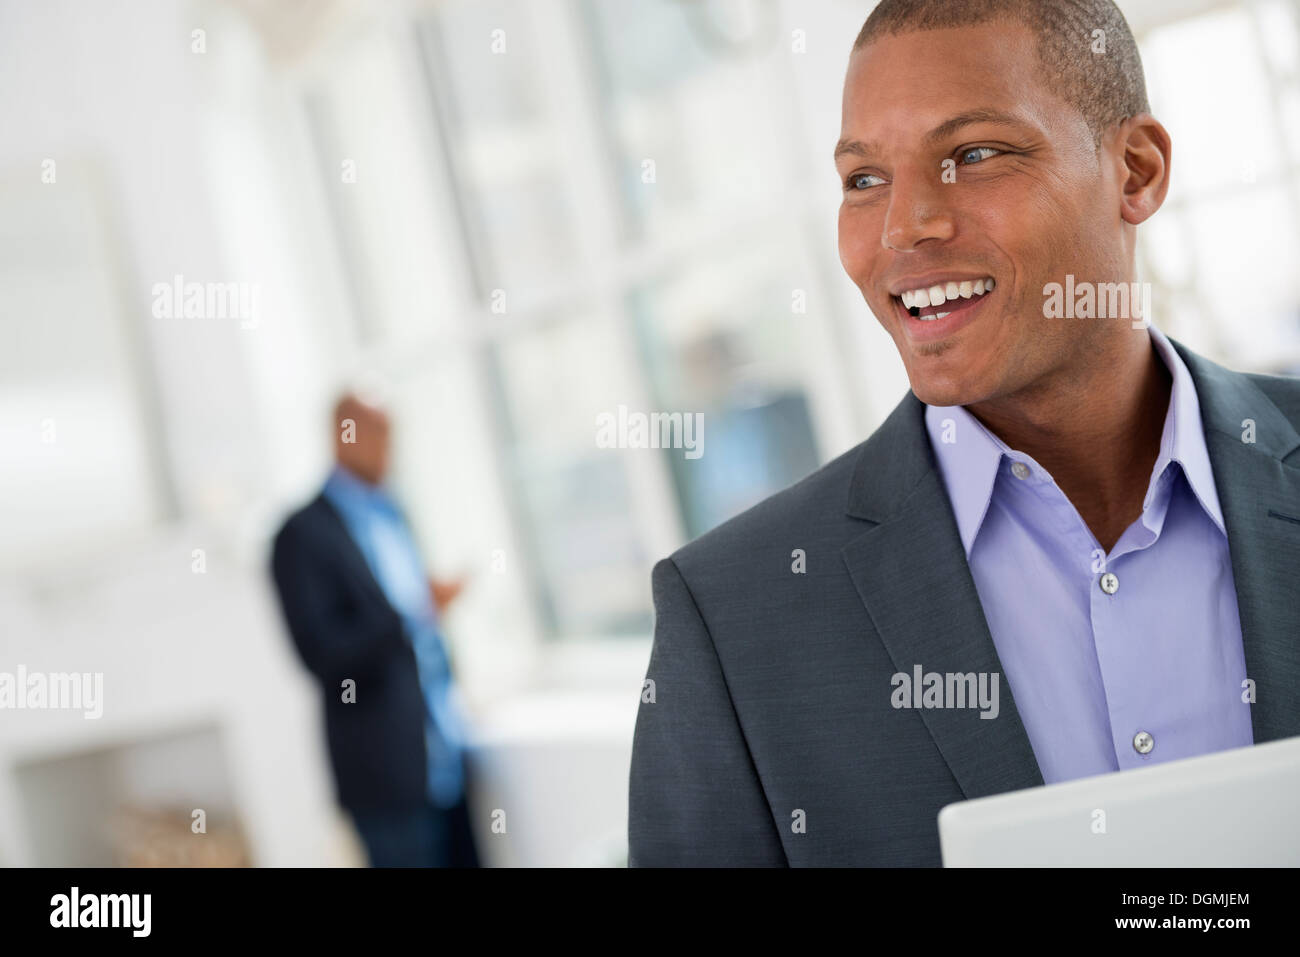 Business people. A young man in a suit using a digital tablet. - Stock Image